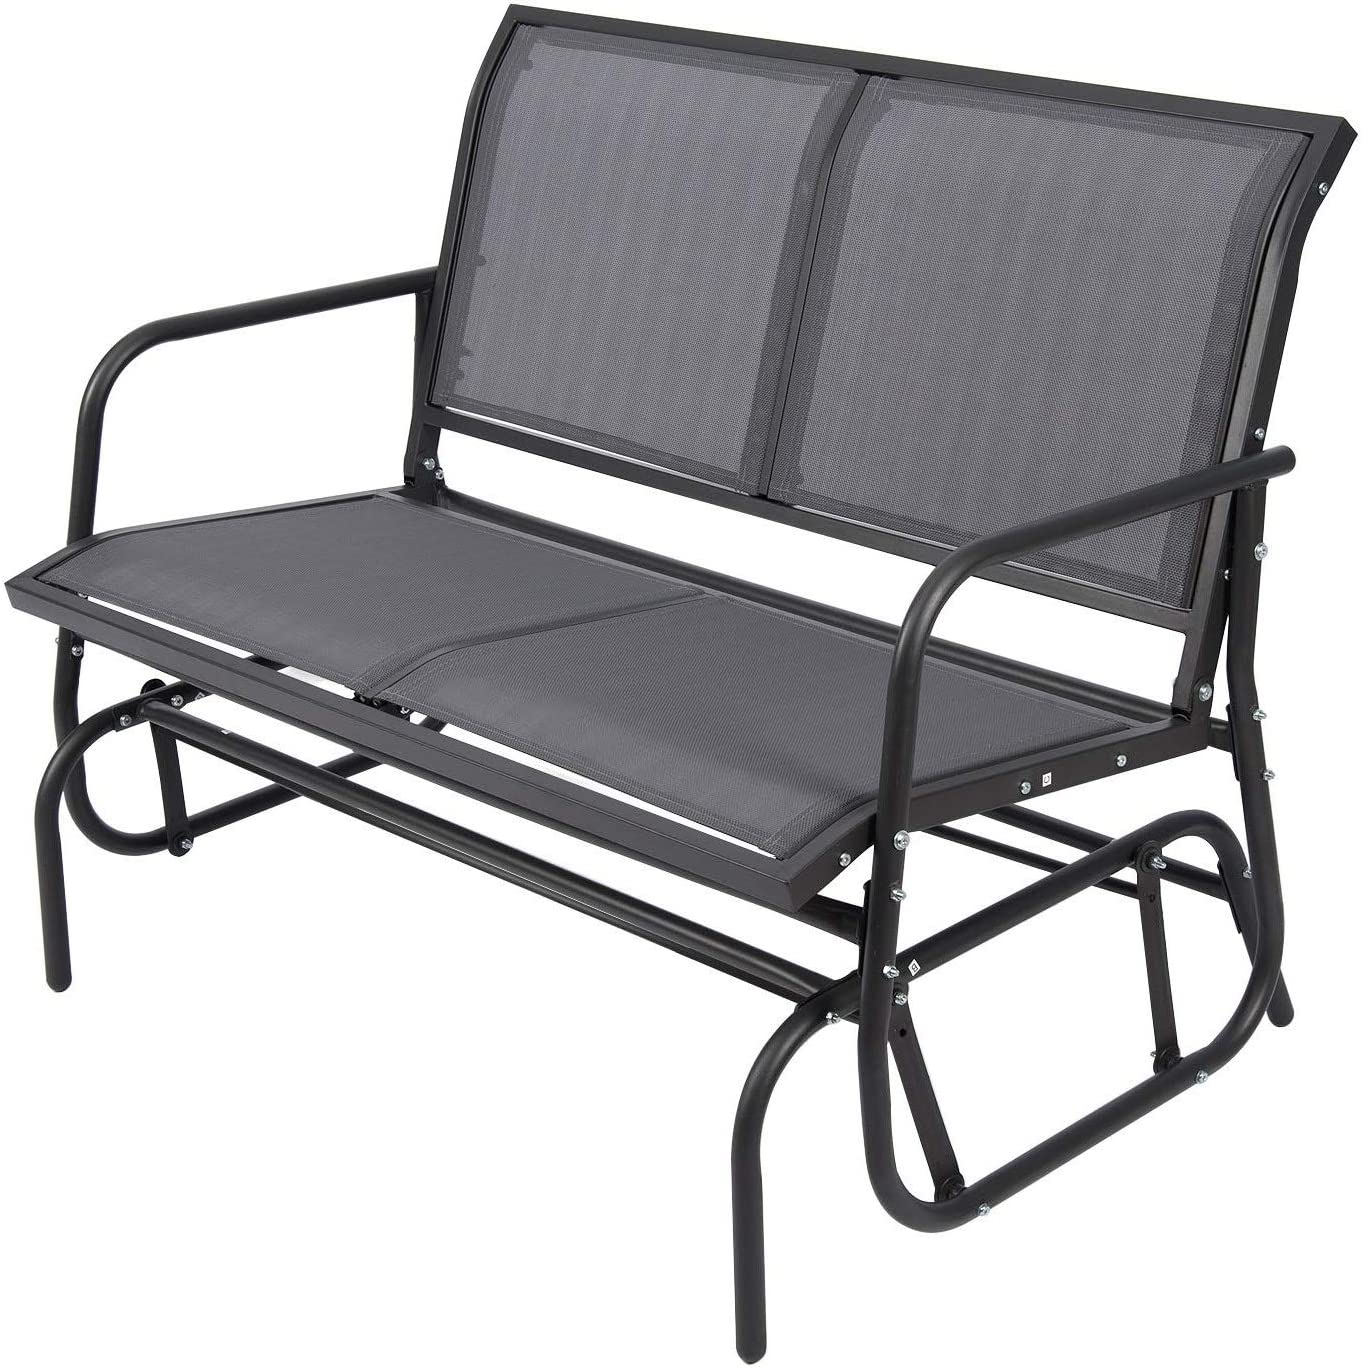 Outdoor Glider Chair for 2 Person, Patio Swing Garden Loveseat, Rocking Seating Textilene Stable Steel Frame Dark Grey